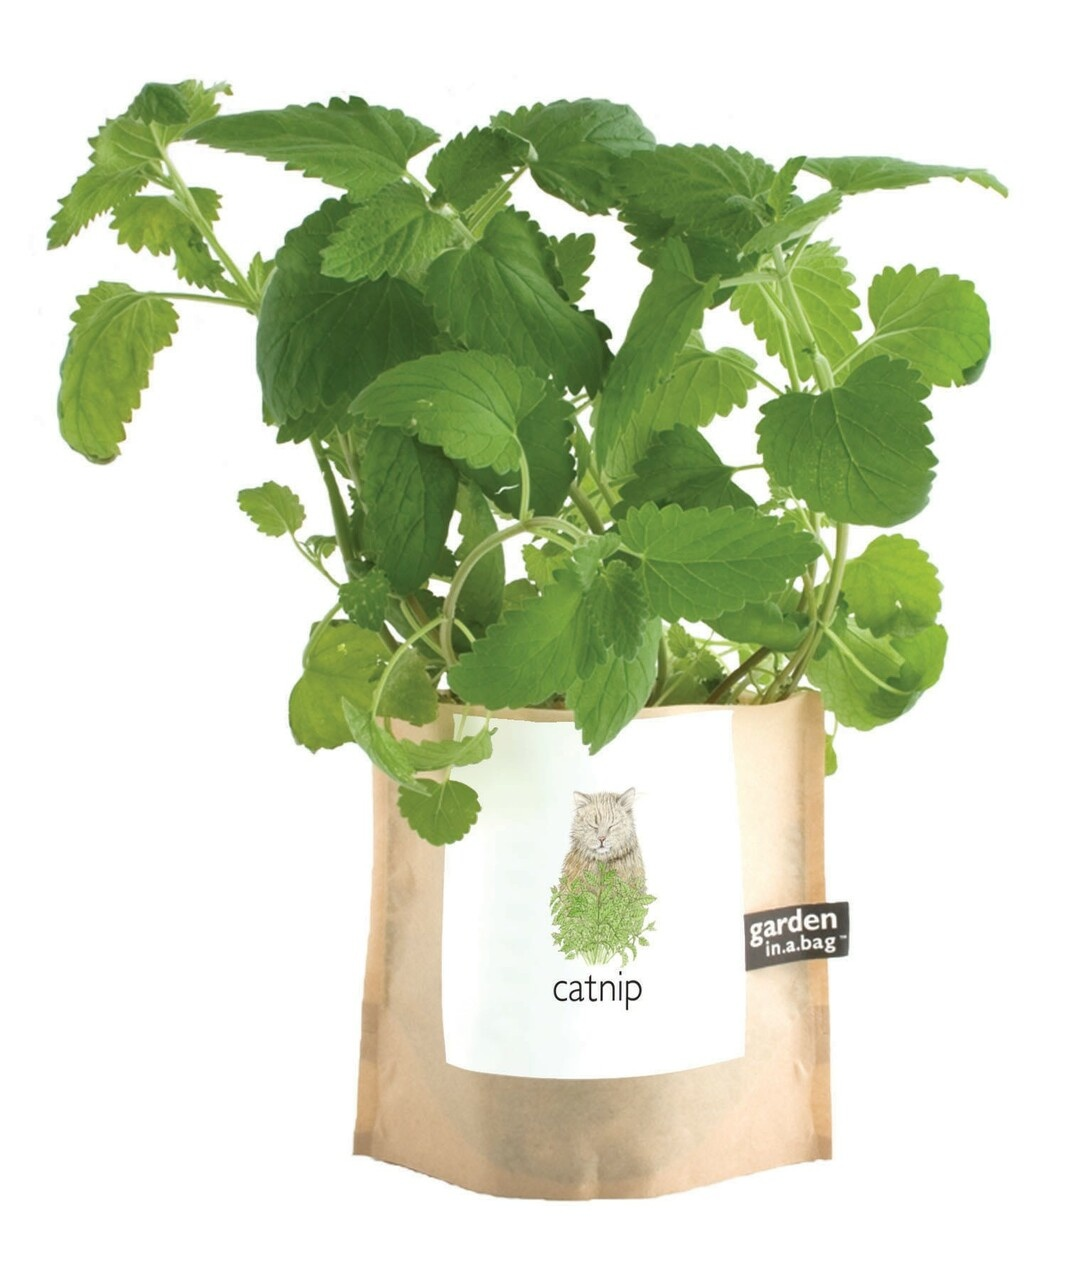 Potting Shed Creations Garden in a Bag Catnip Grow Kit